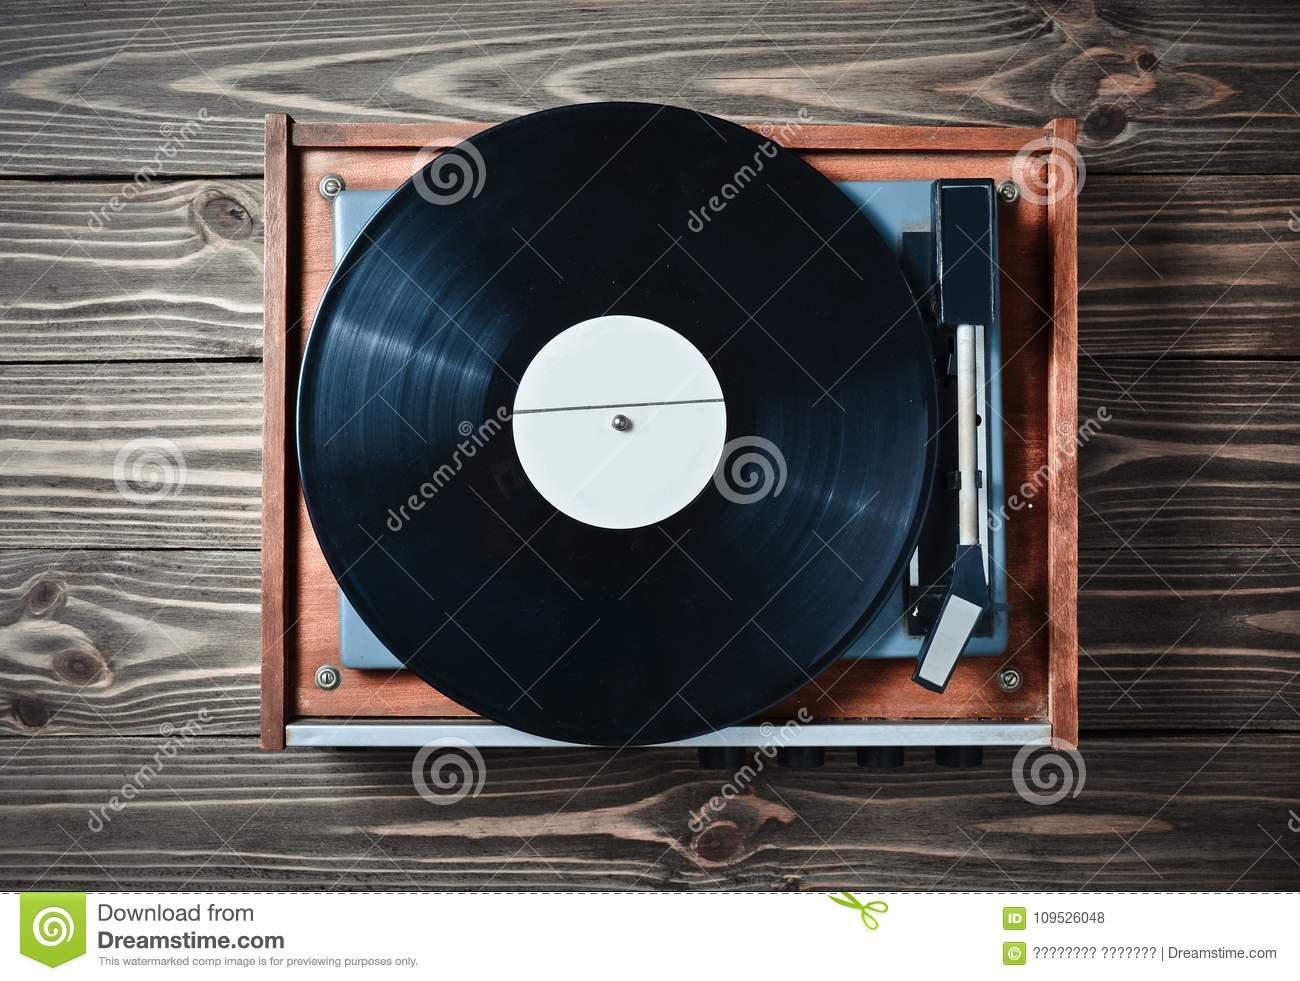 Vinyl player with plates on a wooden table. Entertainment 70s. Listen to music.